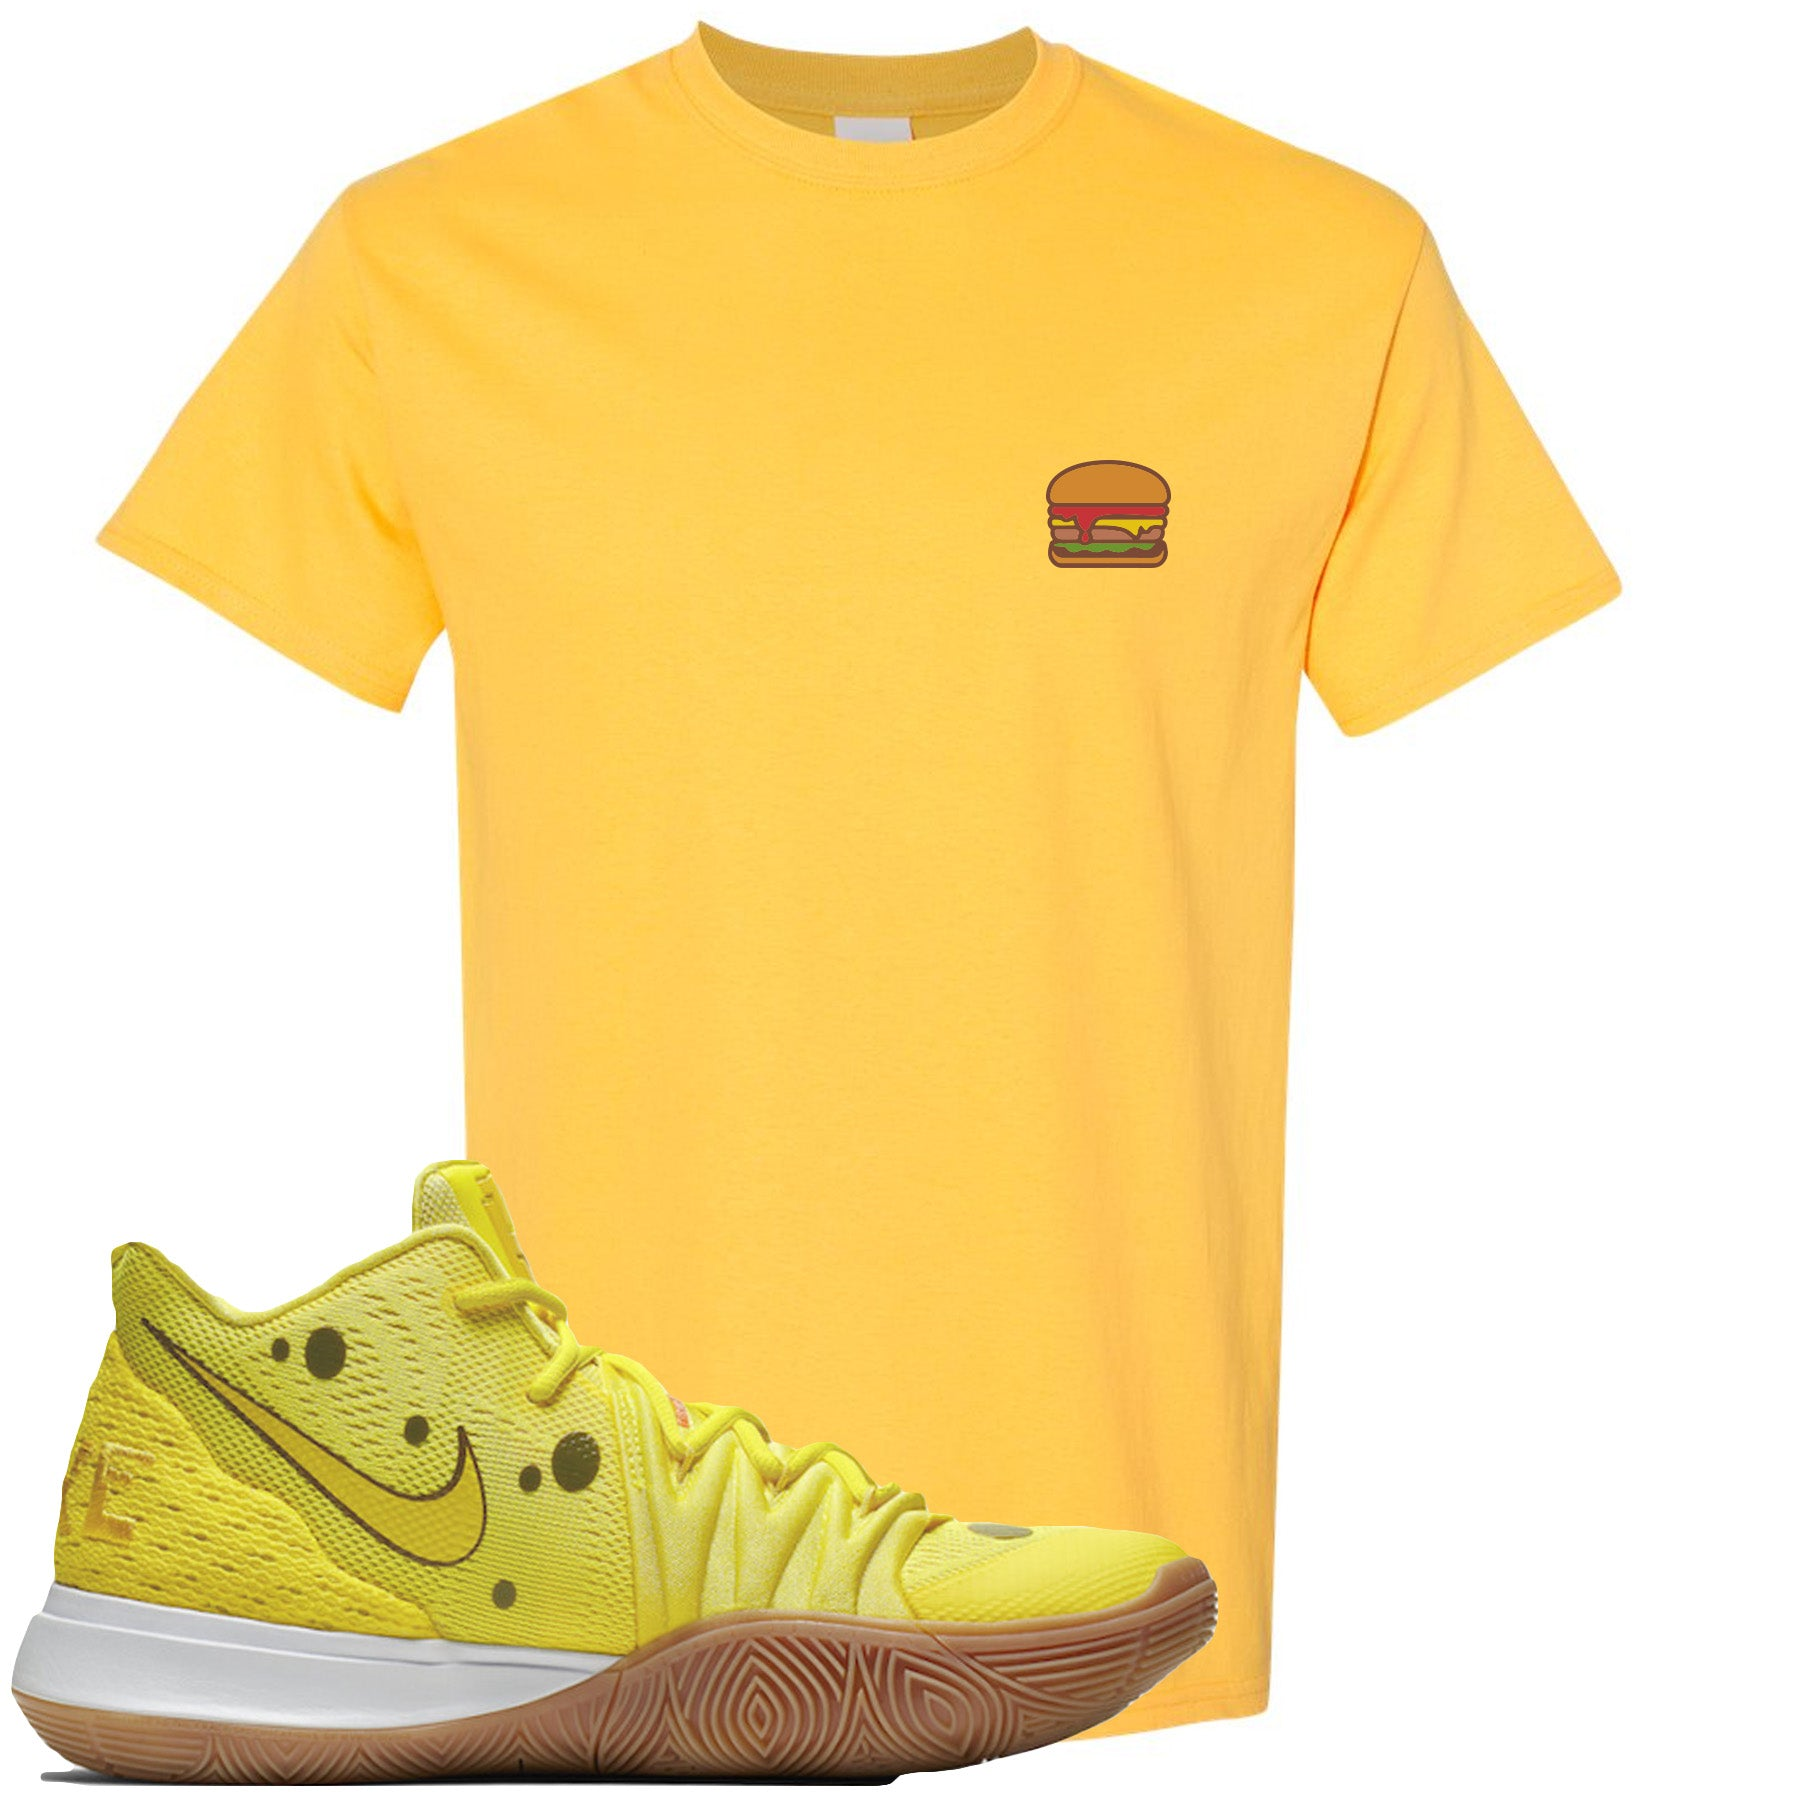 Confundir parcialidad Por separado  kyrie 5 spongebob t shirt Shop Clothing & Shoes Online